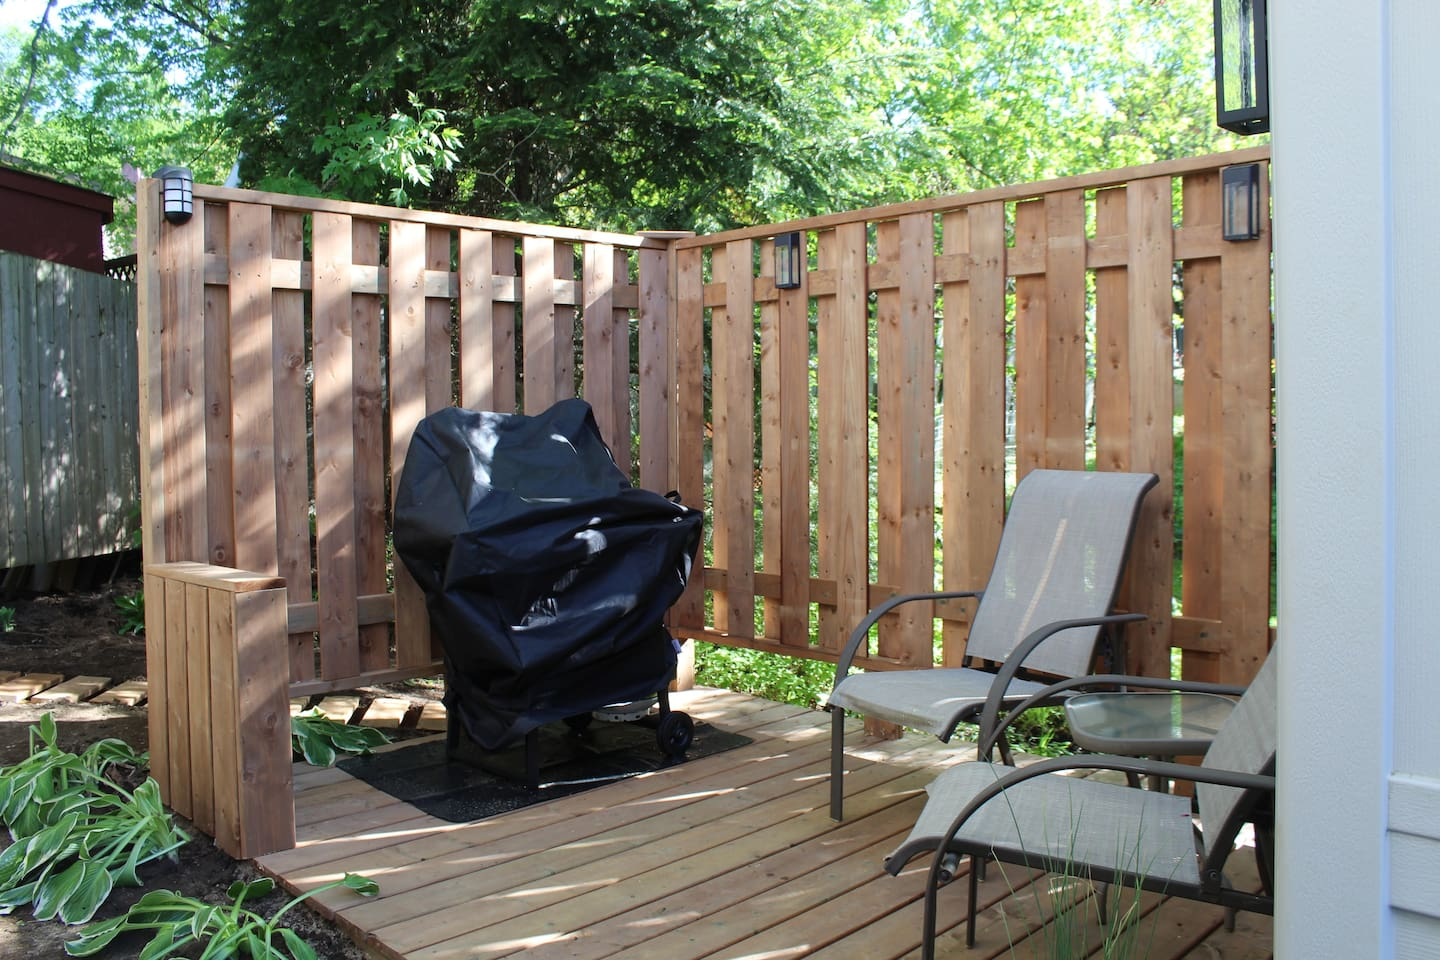 Deck is equipped with a propane BBQ. A mix of shade and dappled sunlight not available during winter season